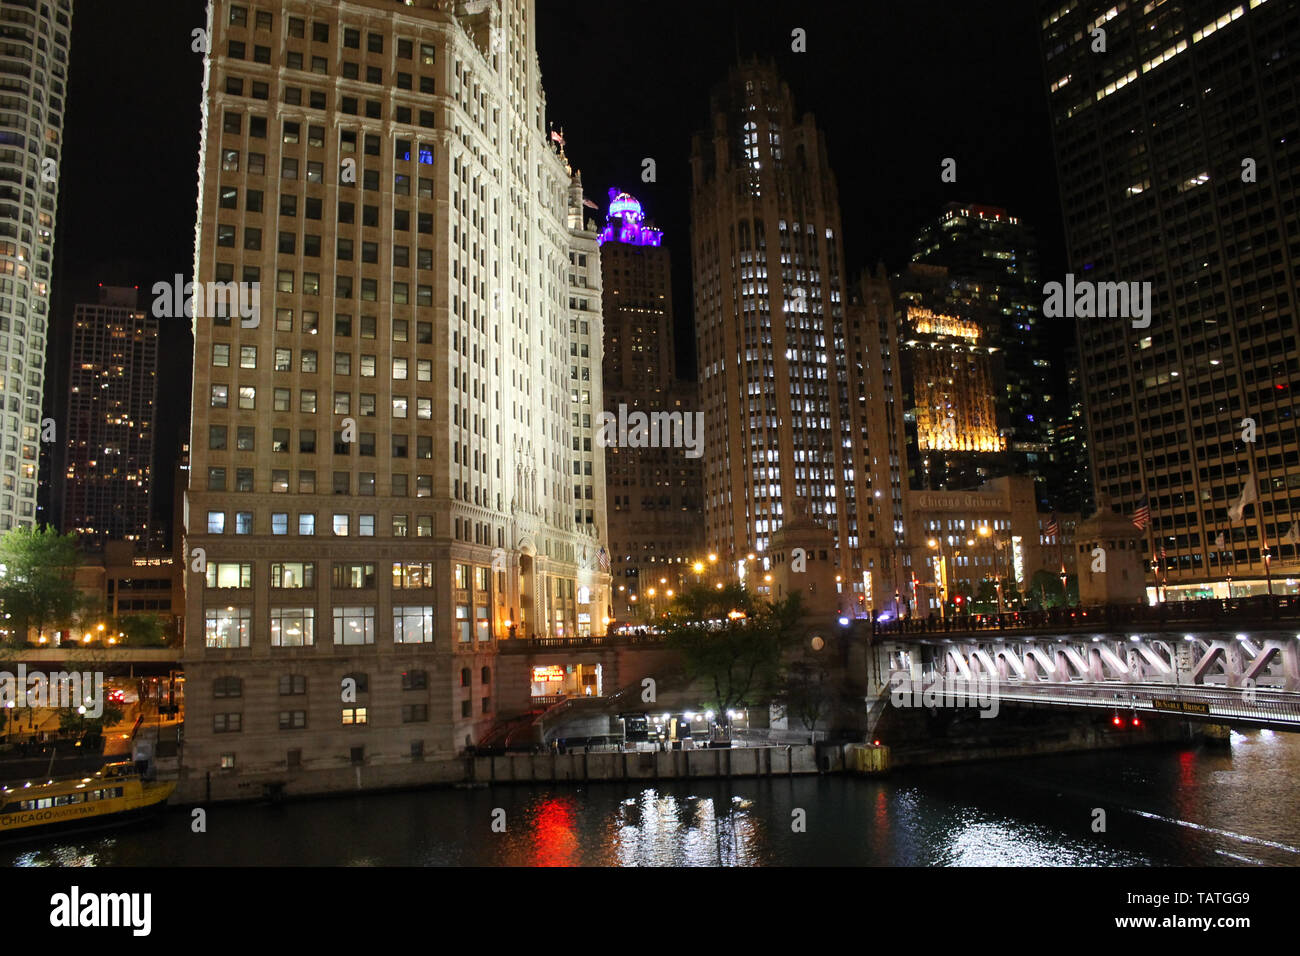 The Wrigley Building, Tribune Tower, and 401 N Michigan Ave along the Chicago River in downtown Chicago, Illinois at night Stock Photo